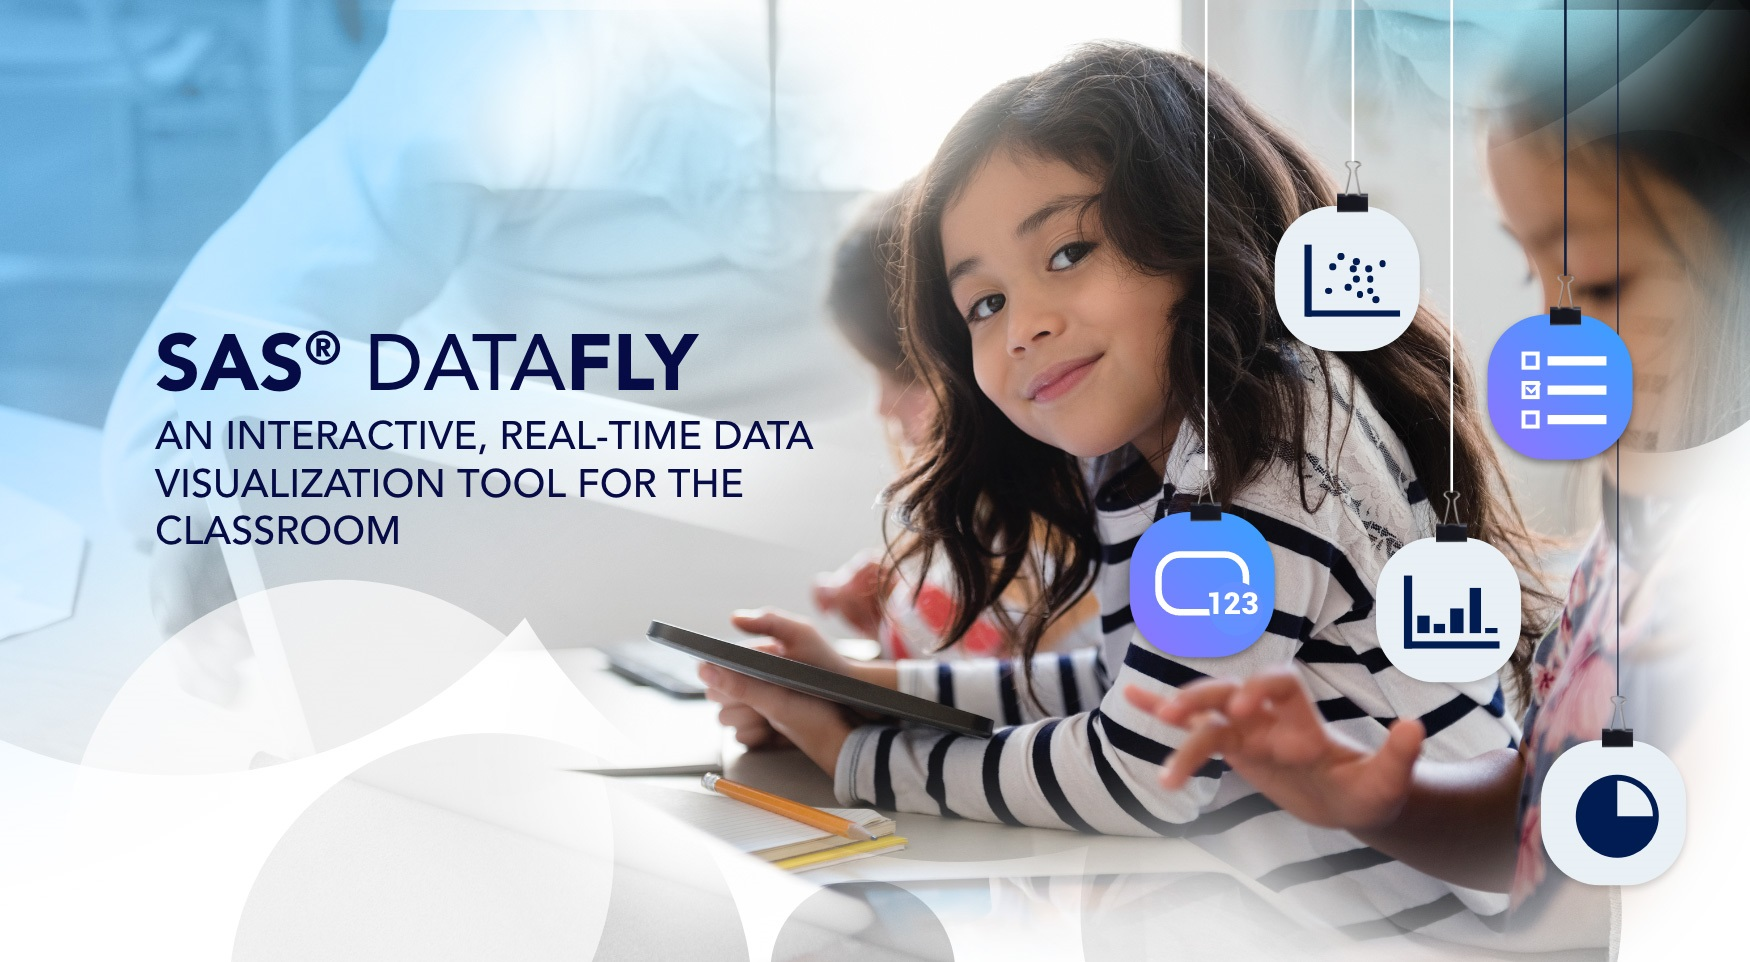 SAS® DataFly is an interactive, real-time data visualization tool for the classroom.